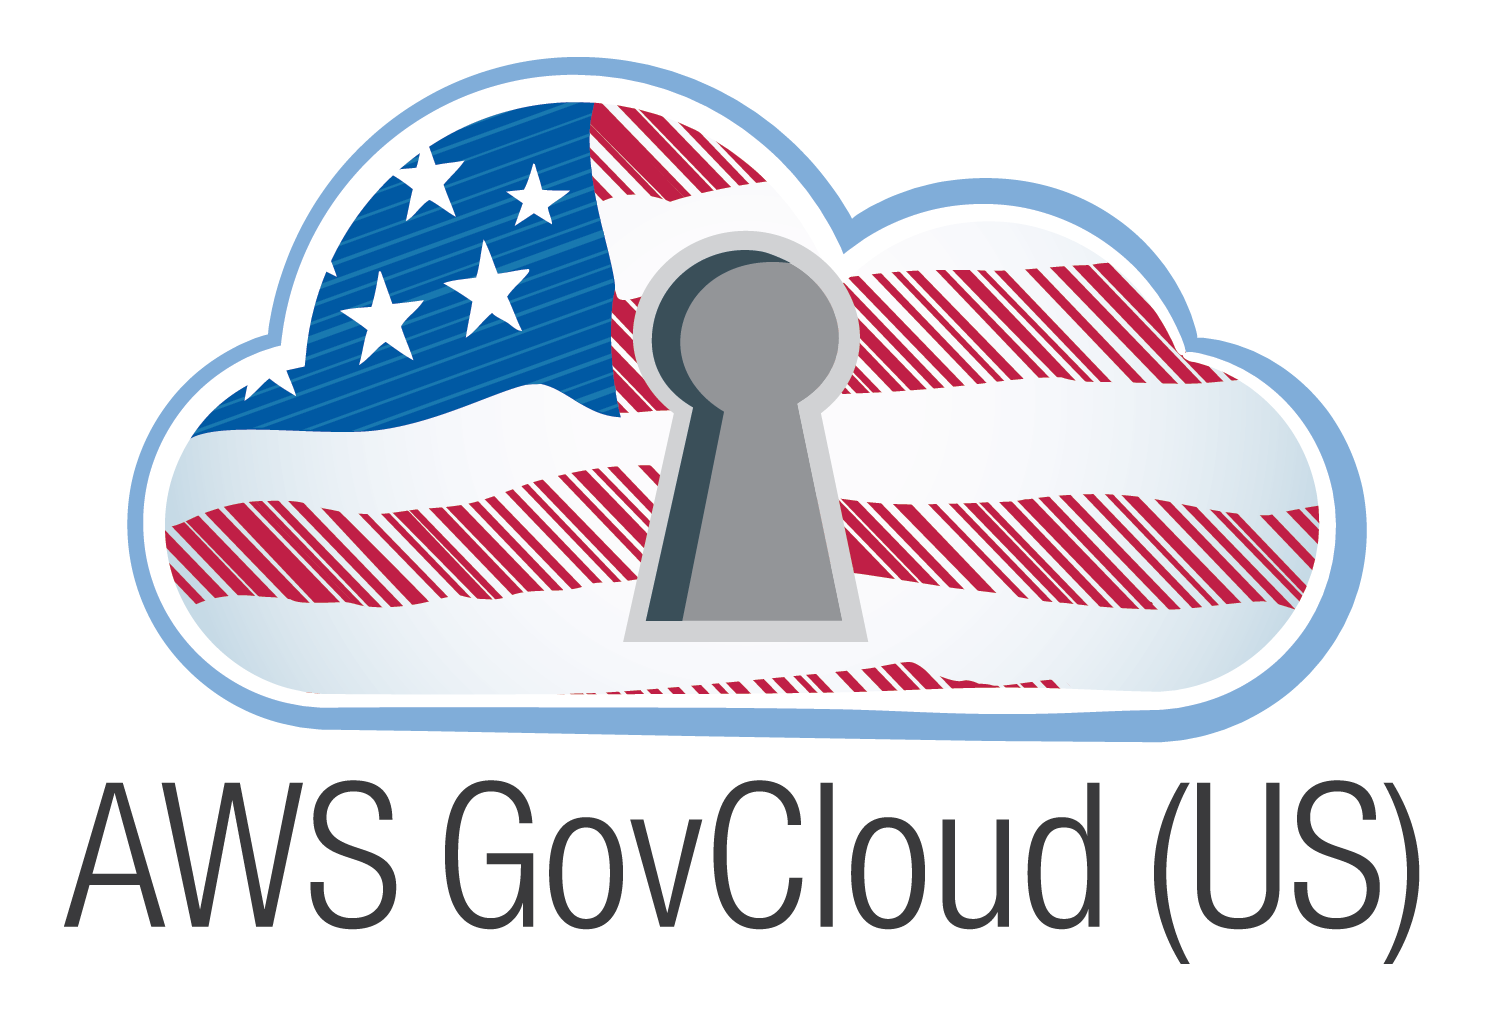 GovCloud - Amazon Web Services (AWS)